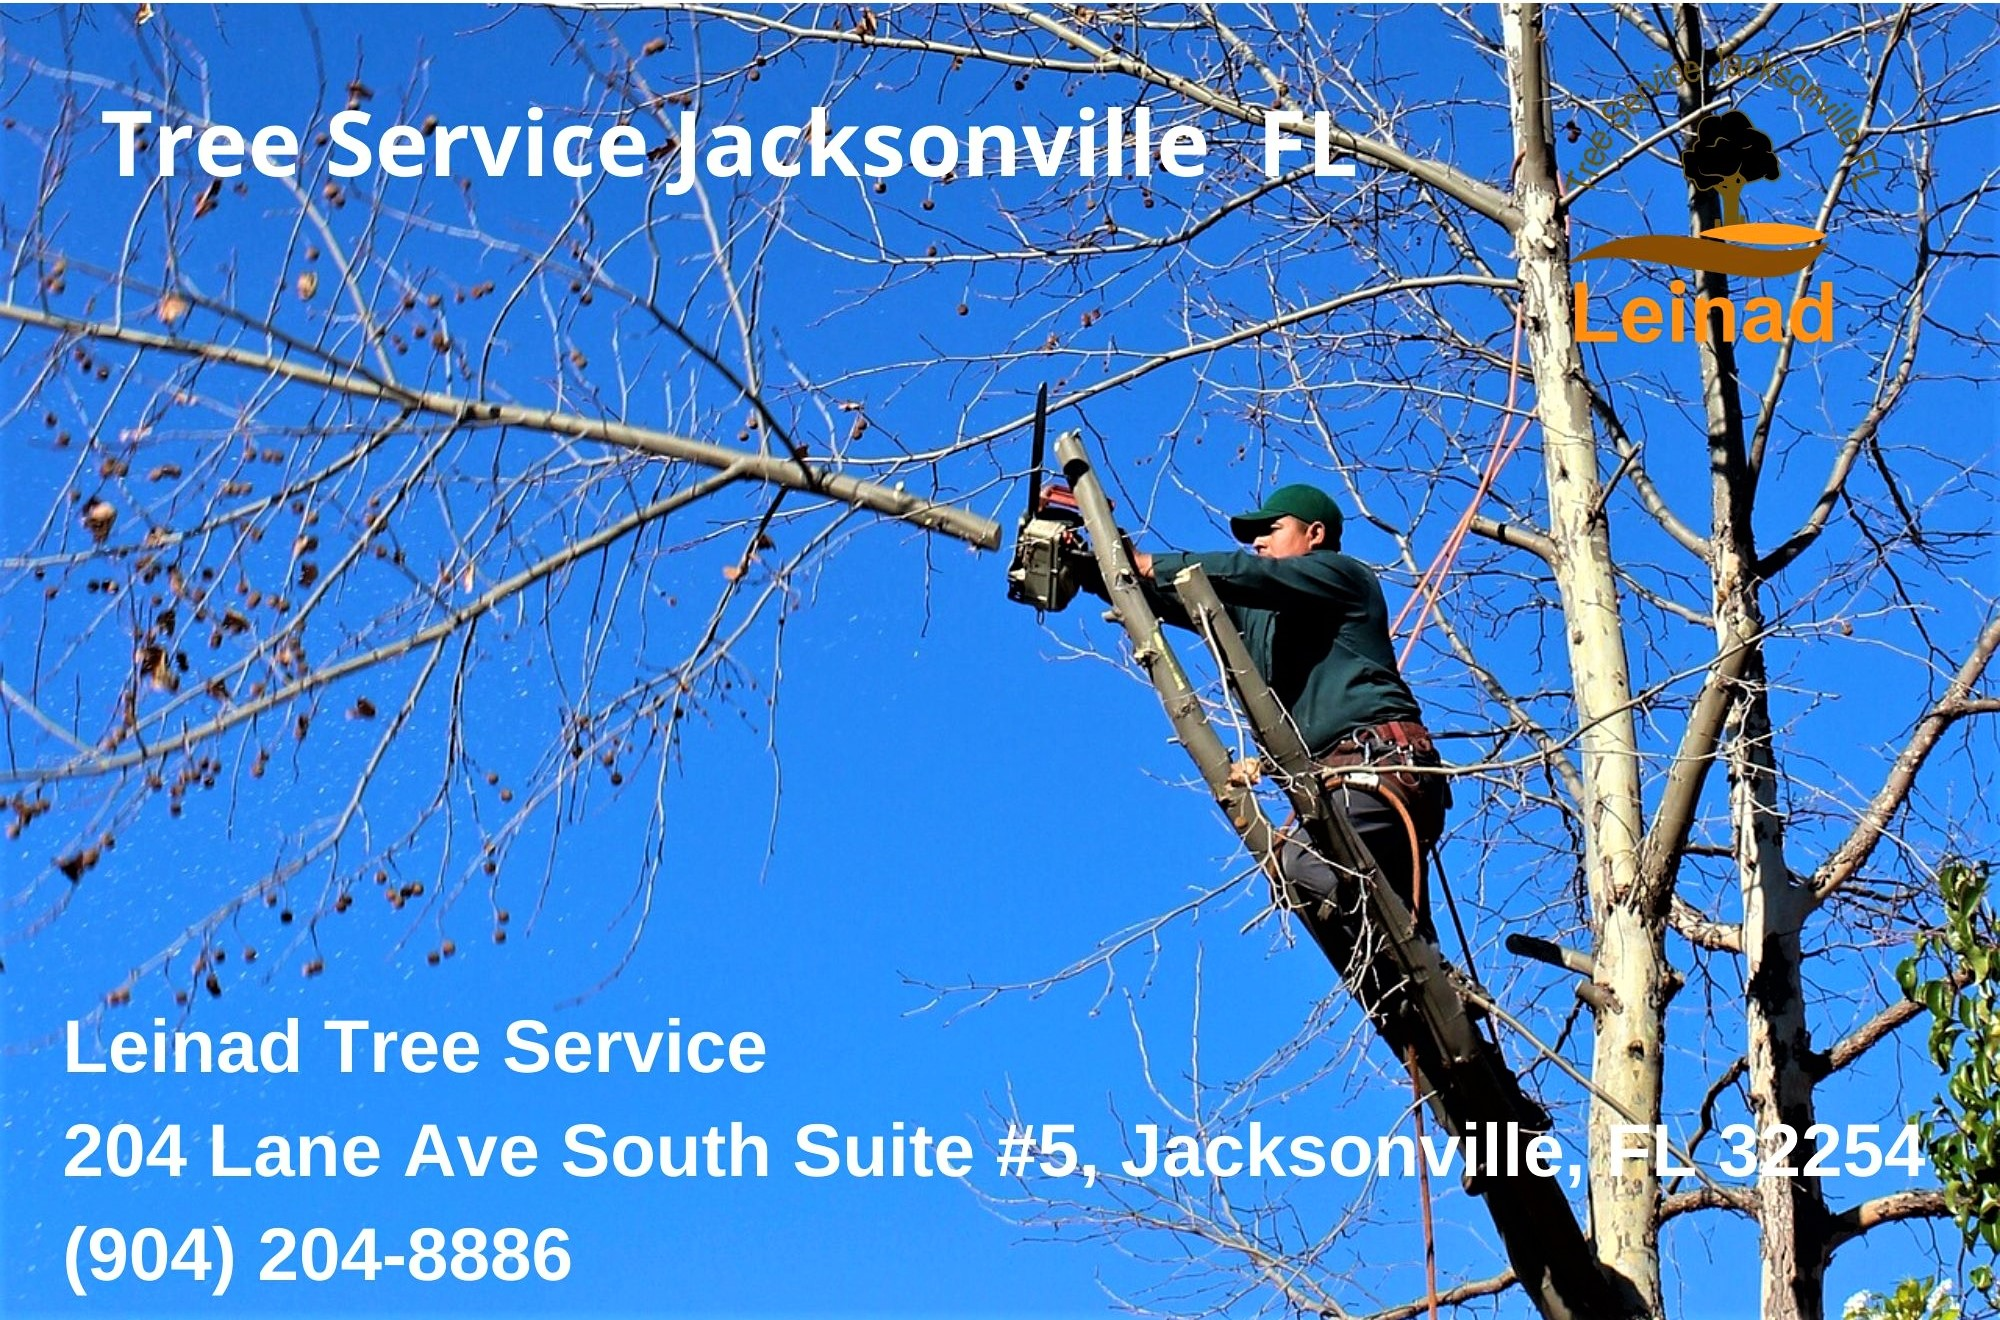 Jacksonville Tree Service Company, Leinad Tree Service, Launches New Website To Enhance Customer Experience In Jacksonville, Florida